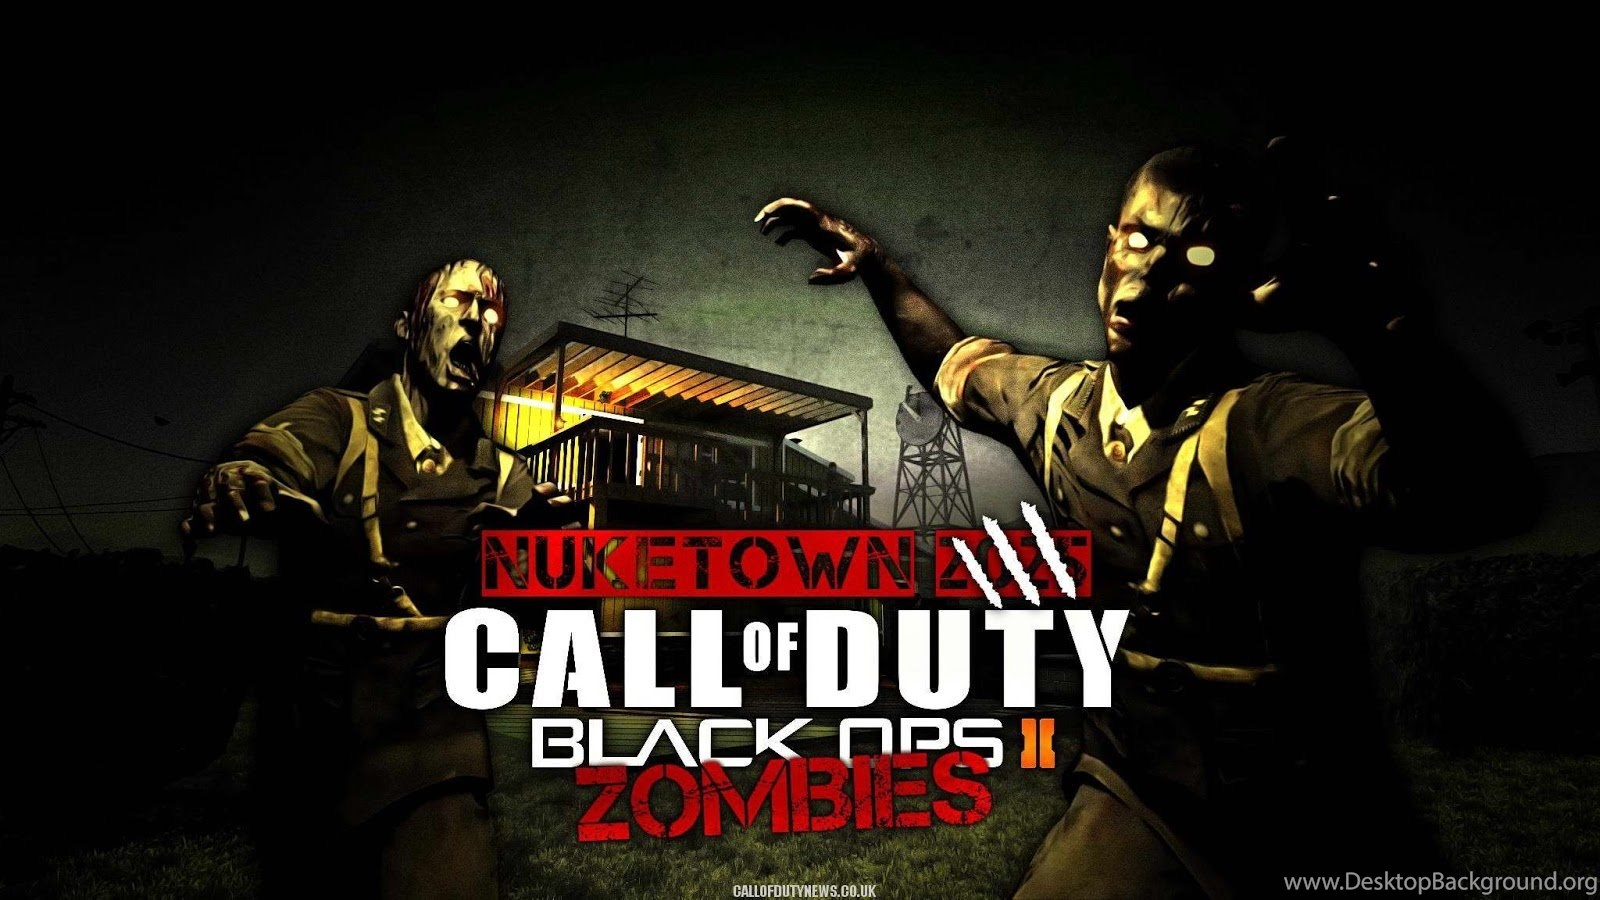 Call Of Duty Black Ops 2 Zombies Wallpapers Wallpaper Desktop